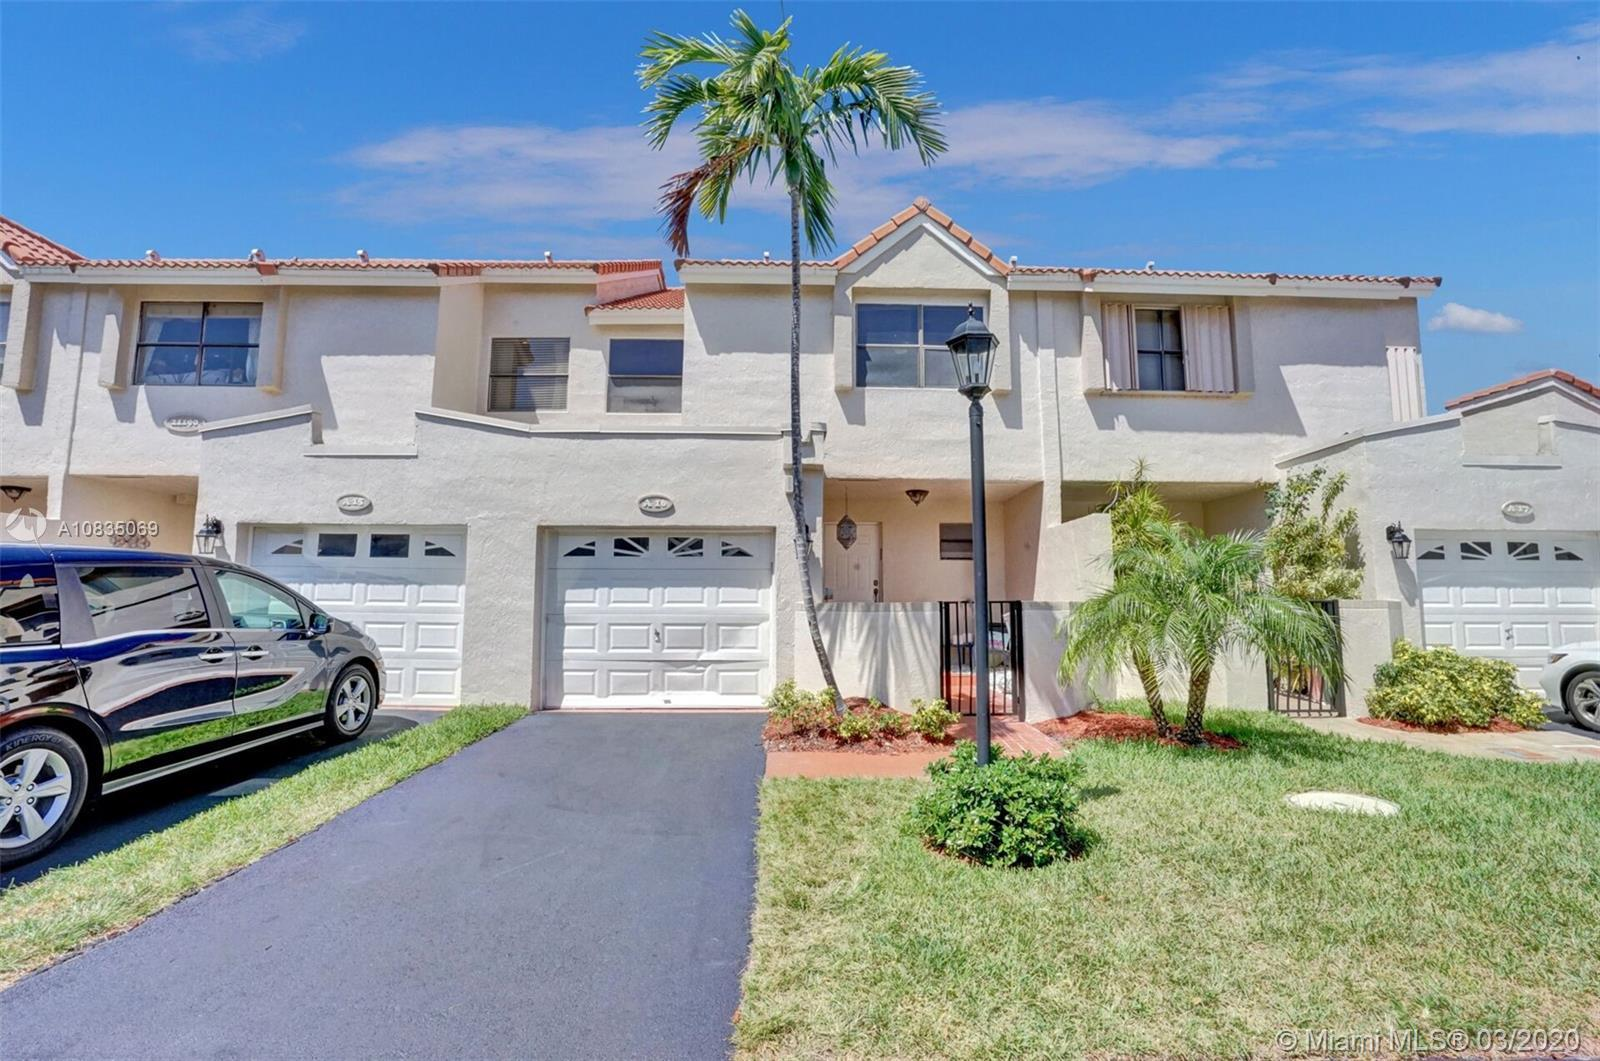 BEST DEAL IN LA MIRAGE!!! Beautiful updated 3/2.5 Town House in the heart of Aventura. GORGEOUS BRAN